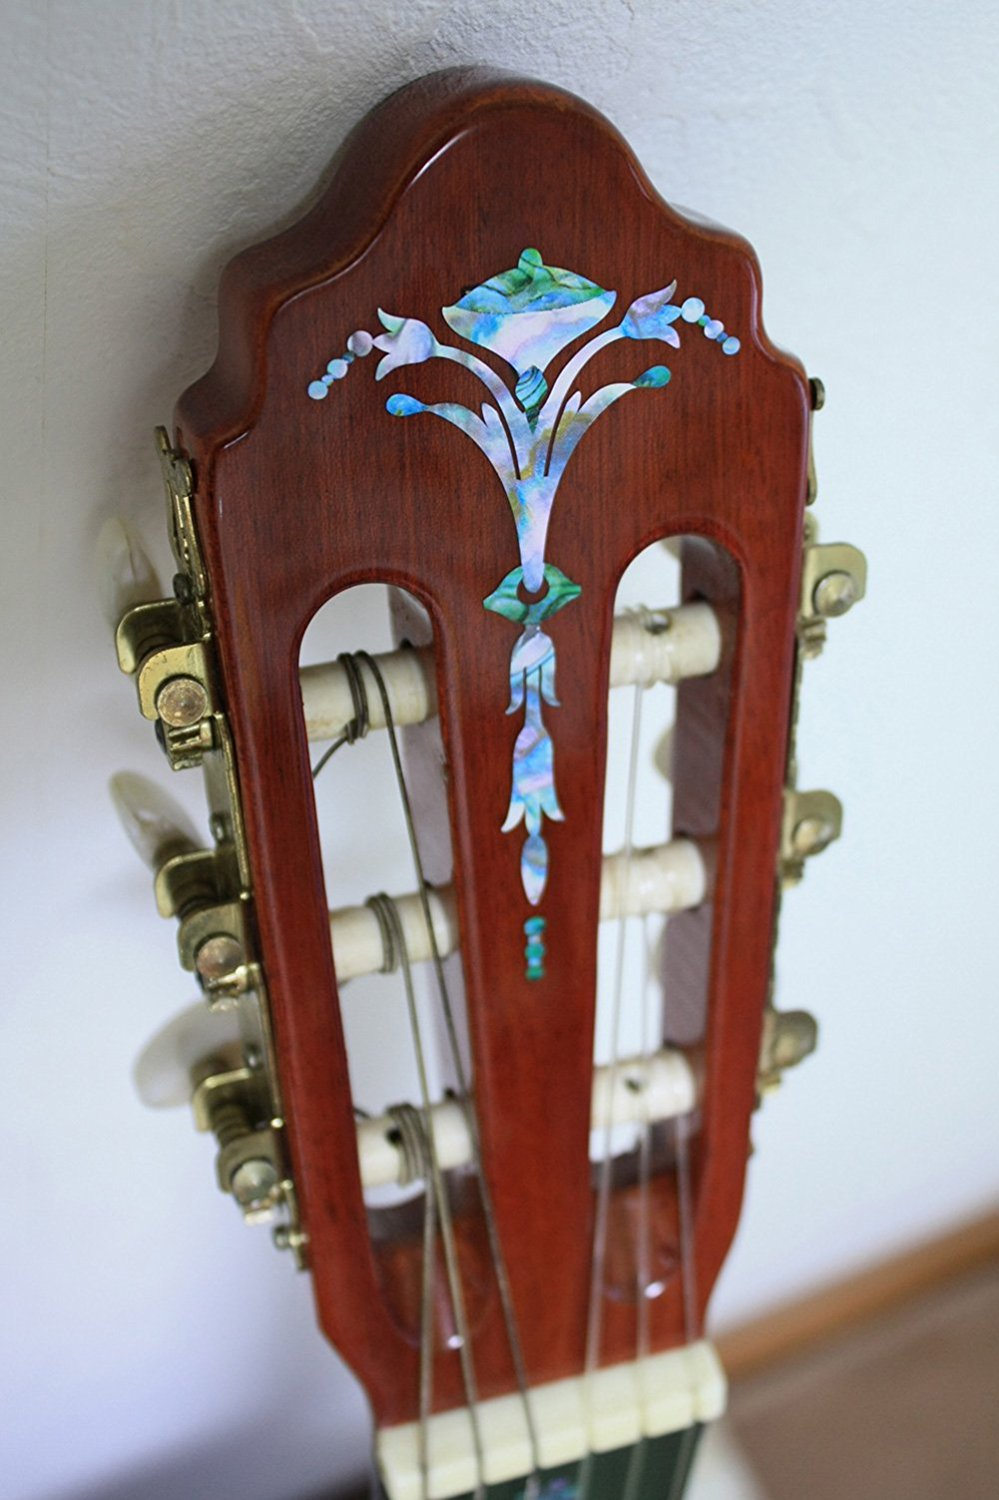 Inlay Sticker Decal Guitar Headstock In Abalone Theme - Old Torch Abalone Mixed Color jockomo p50 gb16 inlay sticker decal for guitar bass body twisted snake made in japan